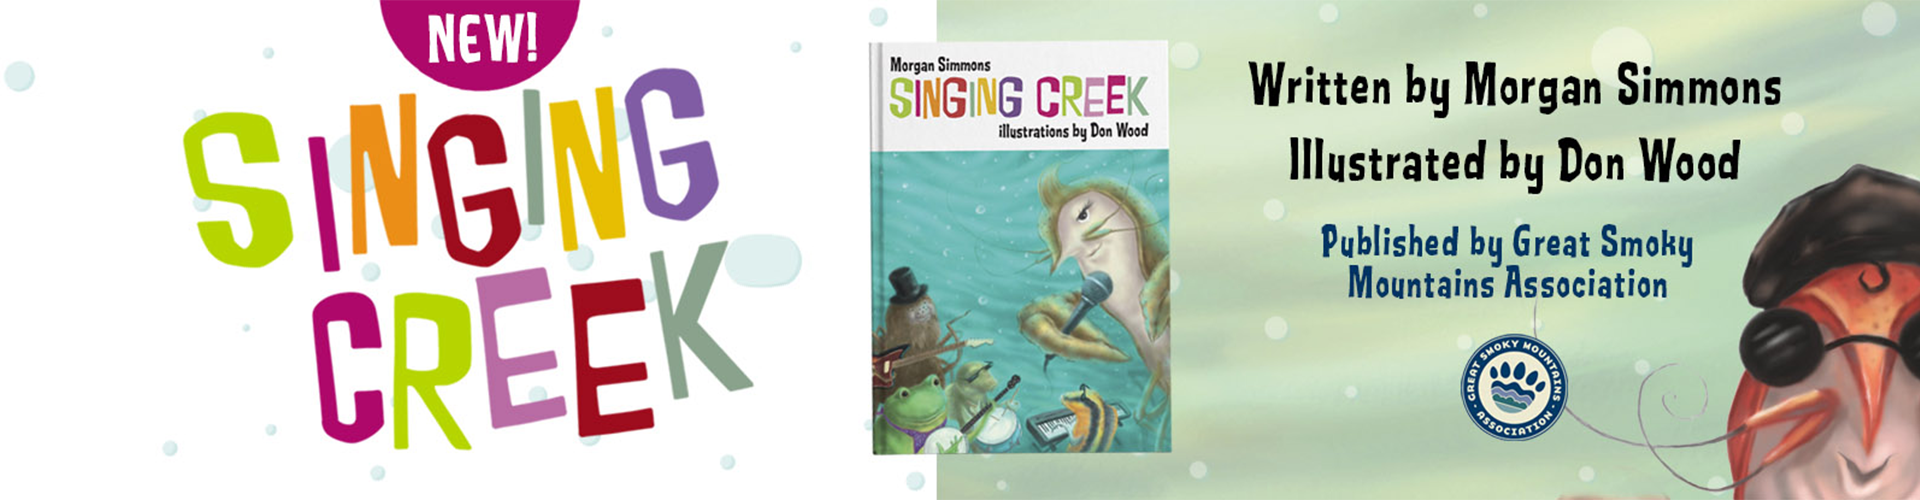 Singing Creek Banner - 500px Height